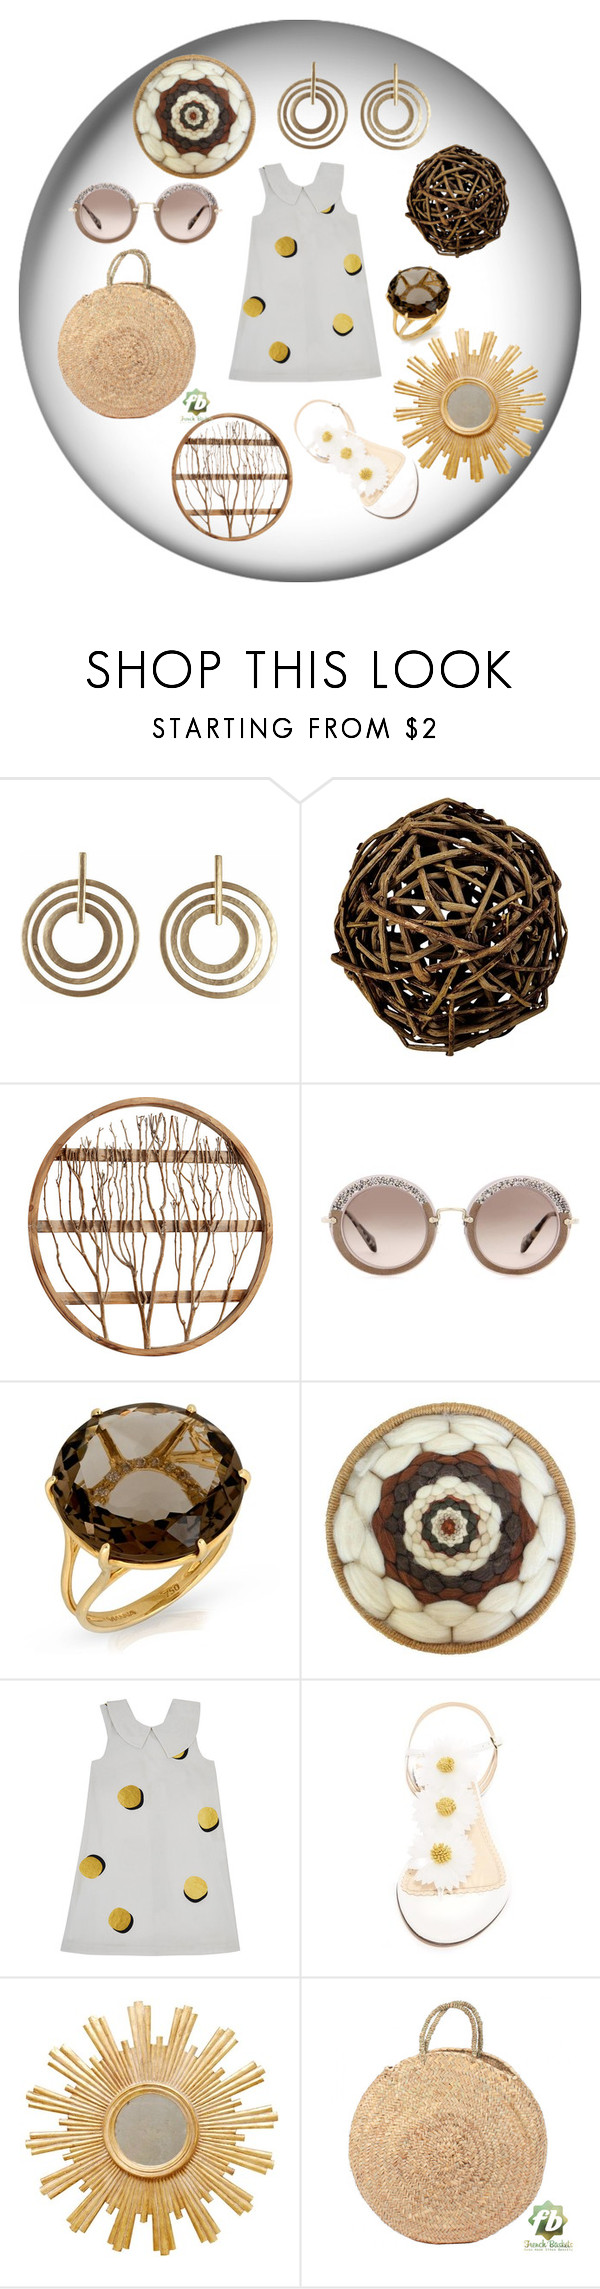 """World is Round"" by ipekzsuel on Polyvore featuring The 2 Bandits, Pier 1 Imports, Cyan Design, Miu Miu, Motoreta, Charlotte Olympia and Worlds Away"